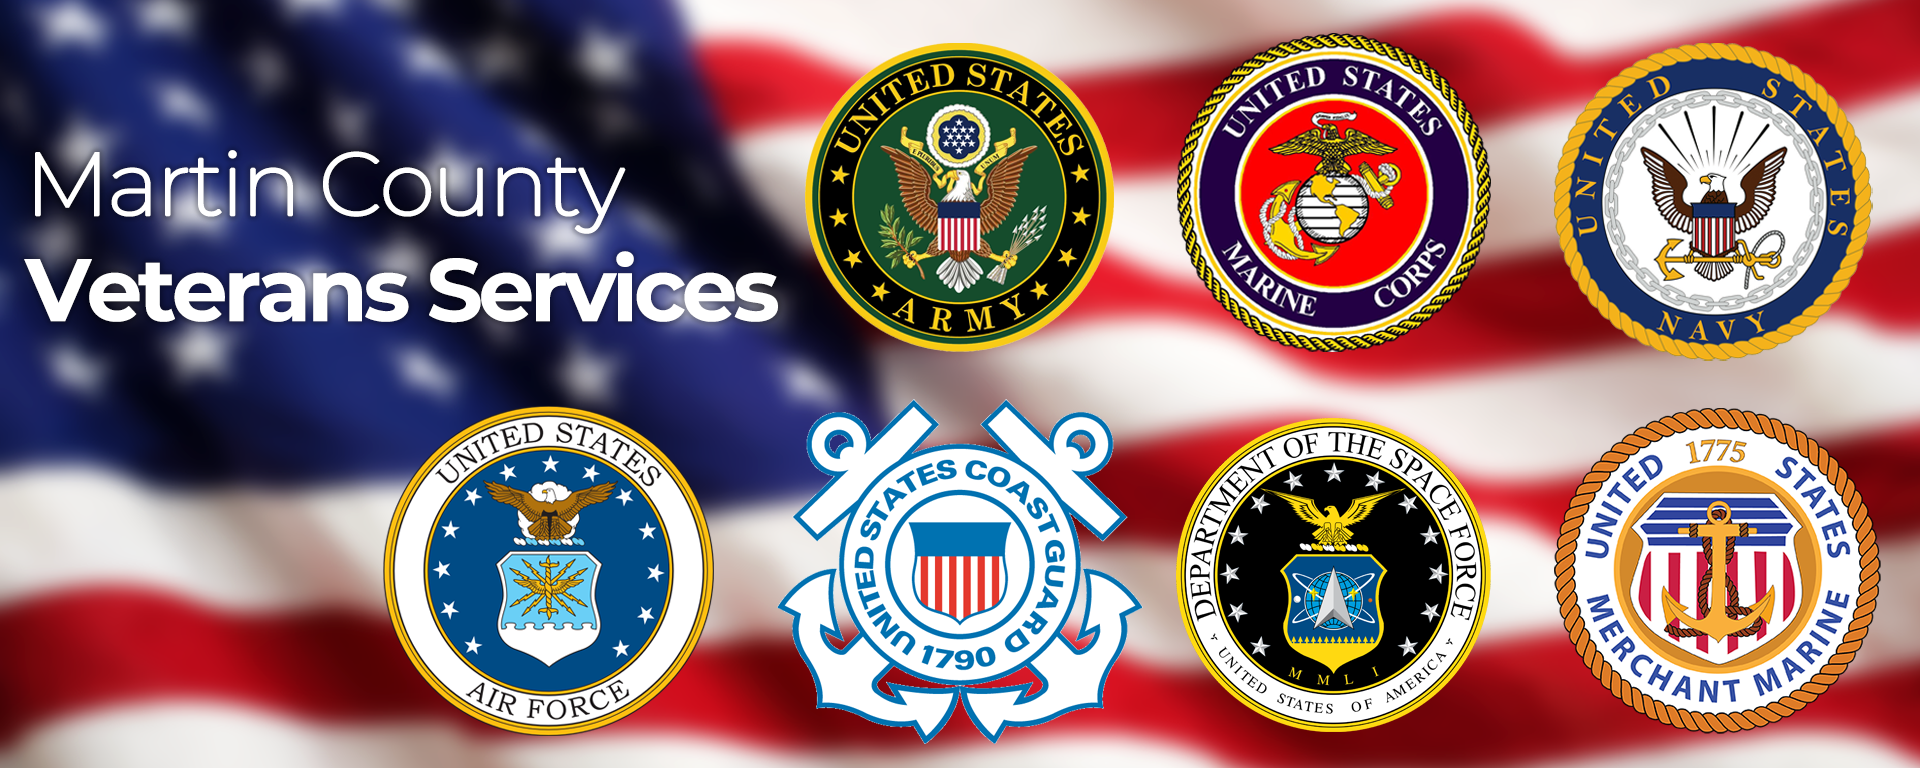 Seals for the Armed Services of the United States of America